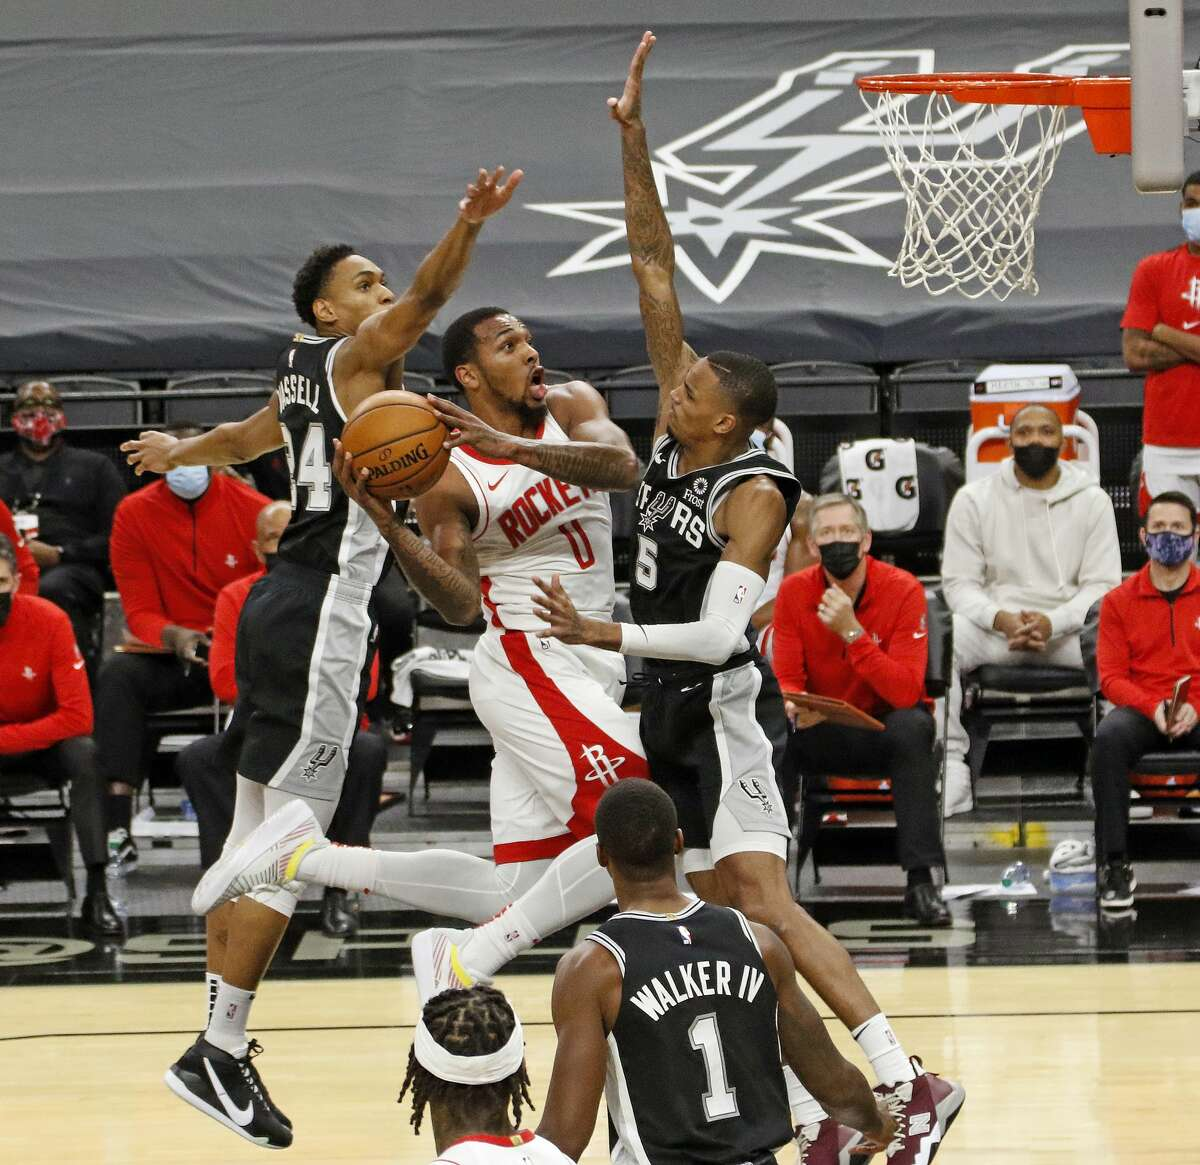 SAN ANTONIO, TX - JANUARY 14: Sterling Brown #0 of the Houston Rockets drives past Dejounte Murray #5 of the San Antonio Spurs and Devin Vassell #24 at AT&T Center on January 14, 2021 in San Antonio, Texas. (Photo by Ronald Cortes/Getty Images)